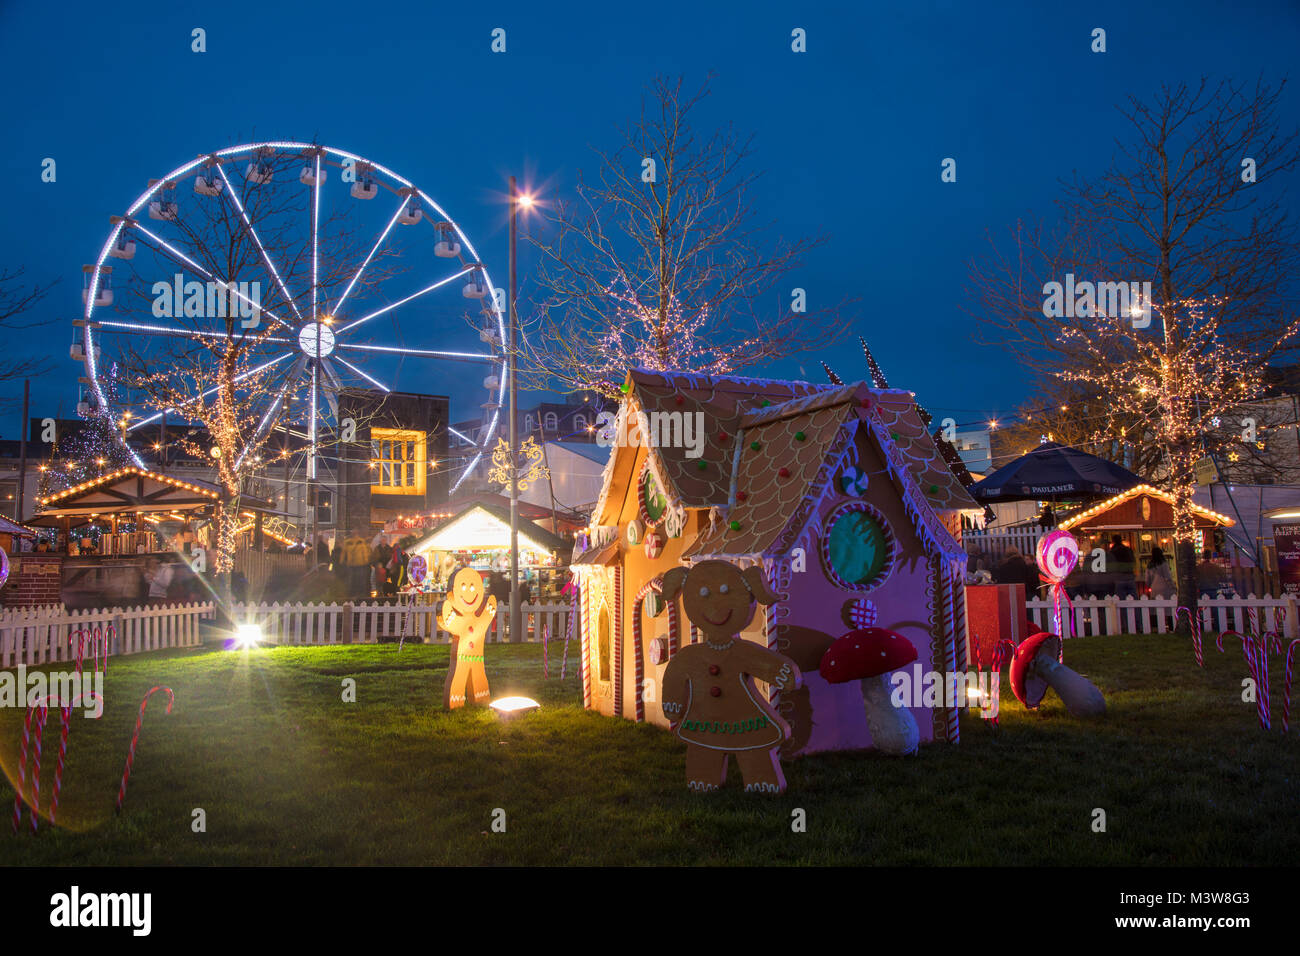 Christmas market and ferris wheel, Eyre Square, Galway city, County Galway, Ireland. - Stock Image